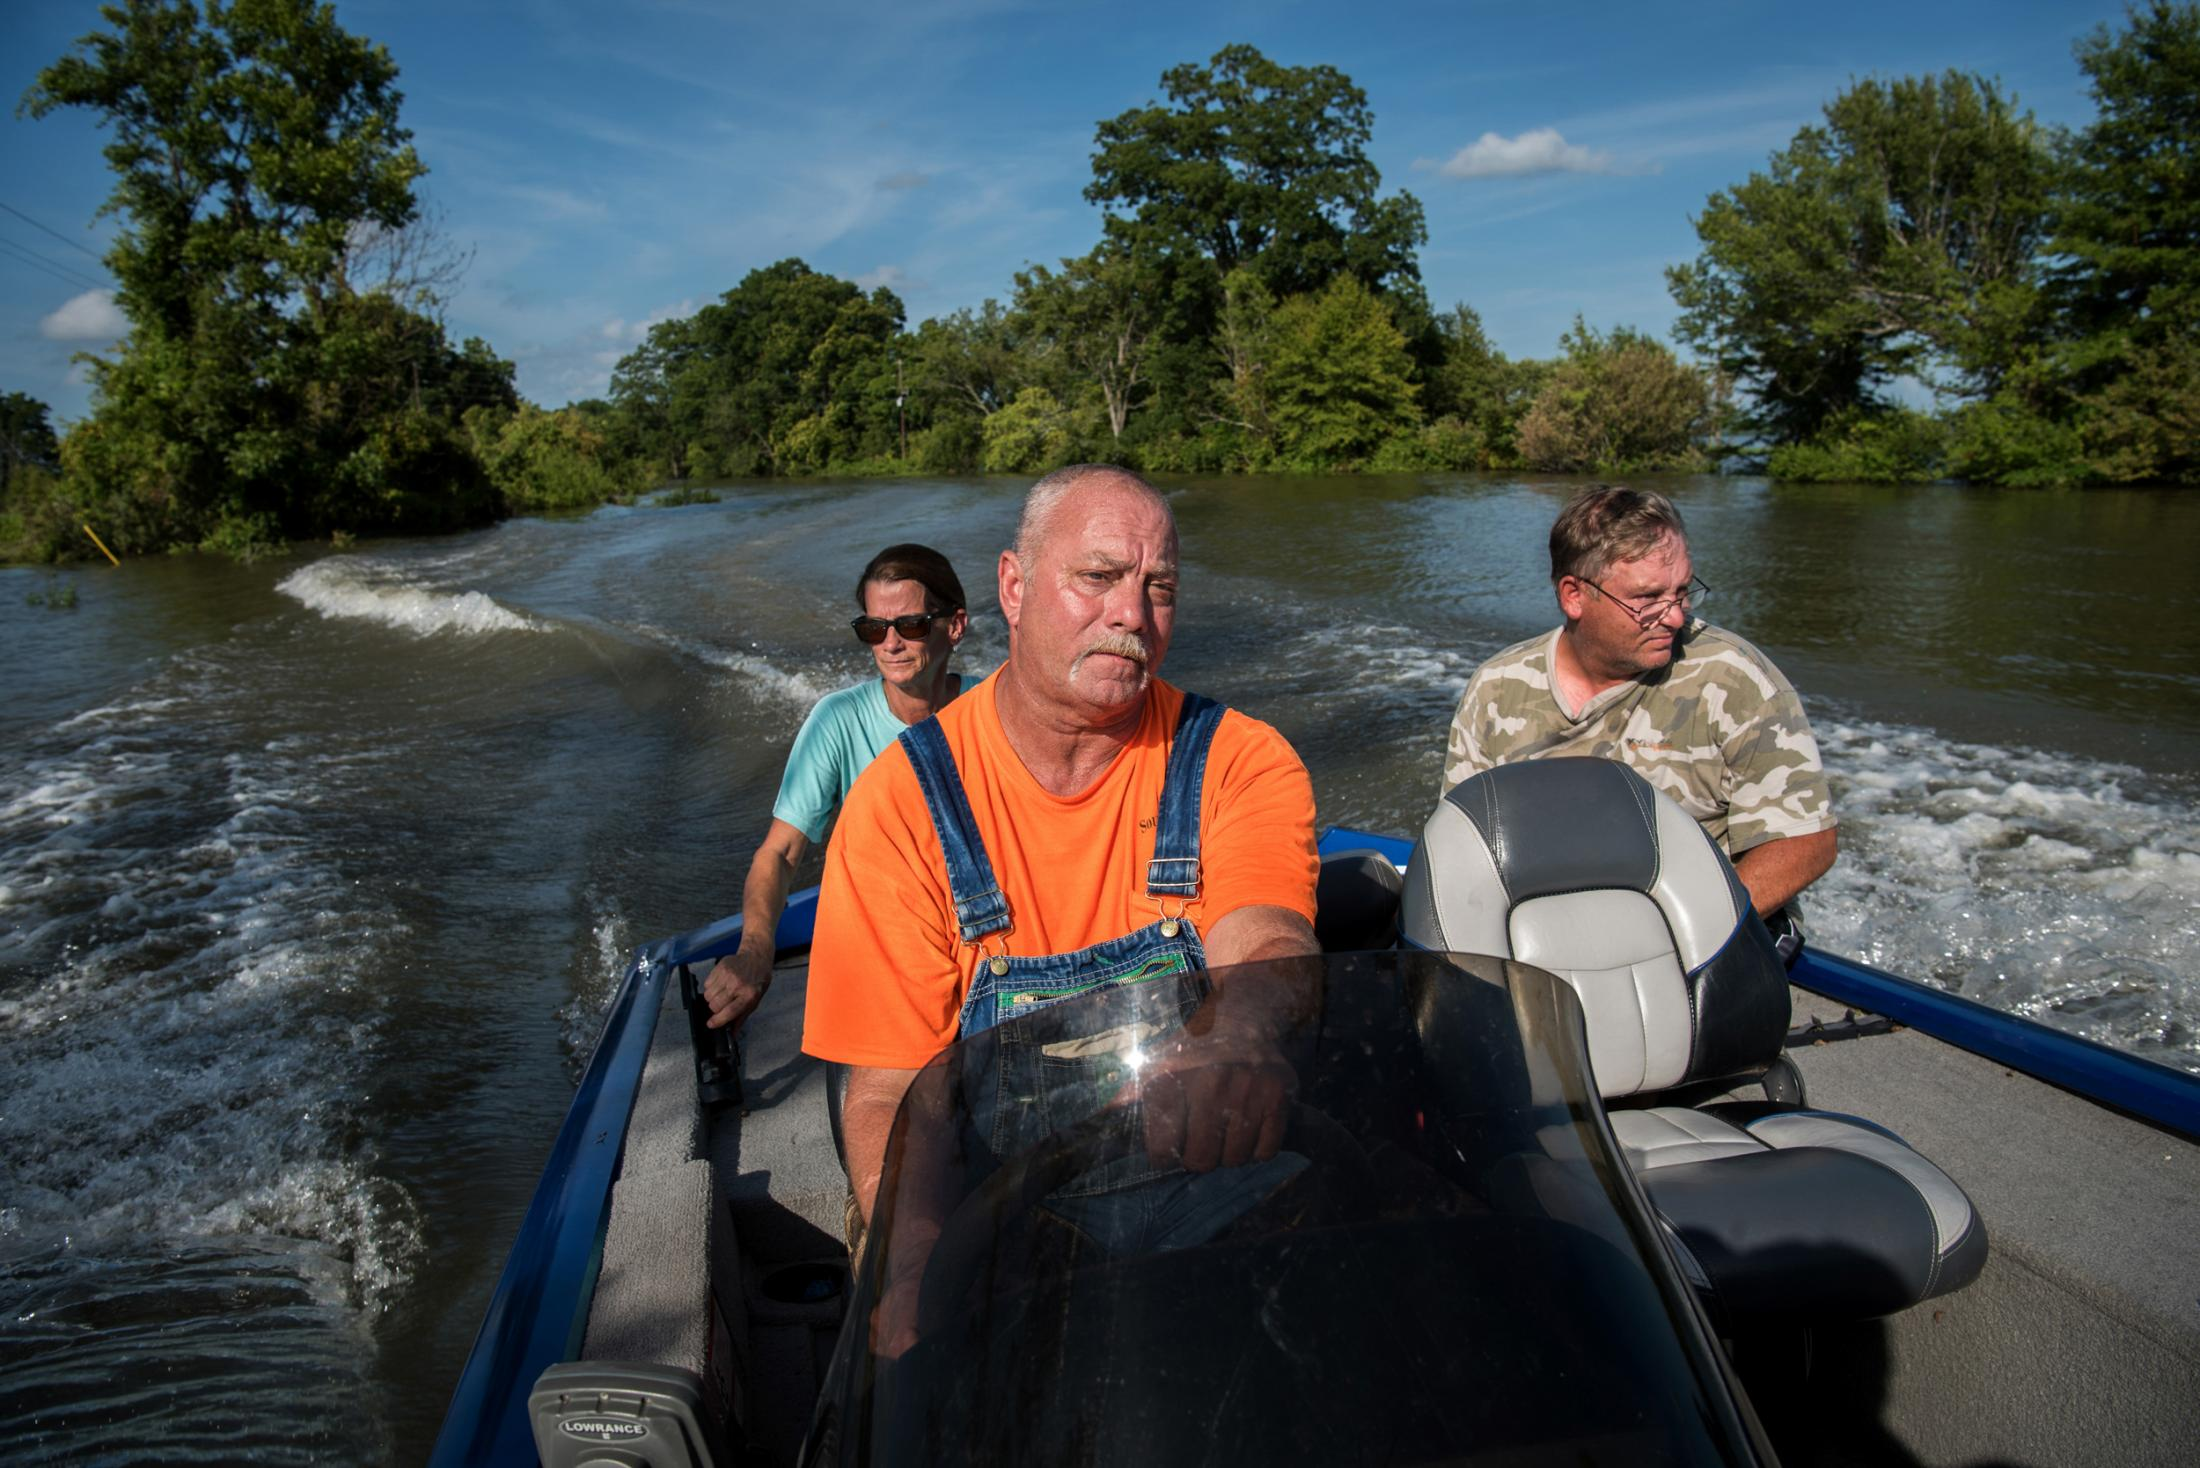 "Carmen Hancock (left to right), James Hancock and Rodney Porter boat down a flooded road near their homes in Valley Park, Mississippi on July 16, 2019. They've spent the past five months helping their elderly neighbors survive in their homes surrounded by floodwater. ""We're living by the good Lord to do what's right,"" said James. ""There's a number of older people living in this neighborhood, and It's just the right thing to do. When the going gets tough, the tough gets going. That's what I live by. You do what has to be done."" Photo by Rory Doyle for the Guardian."